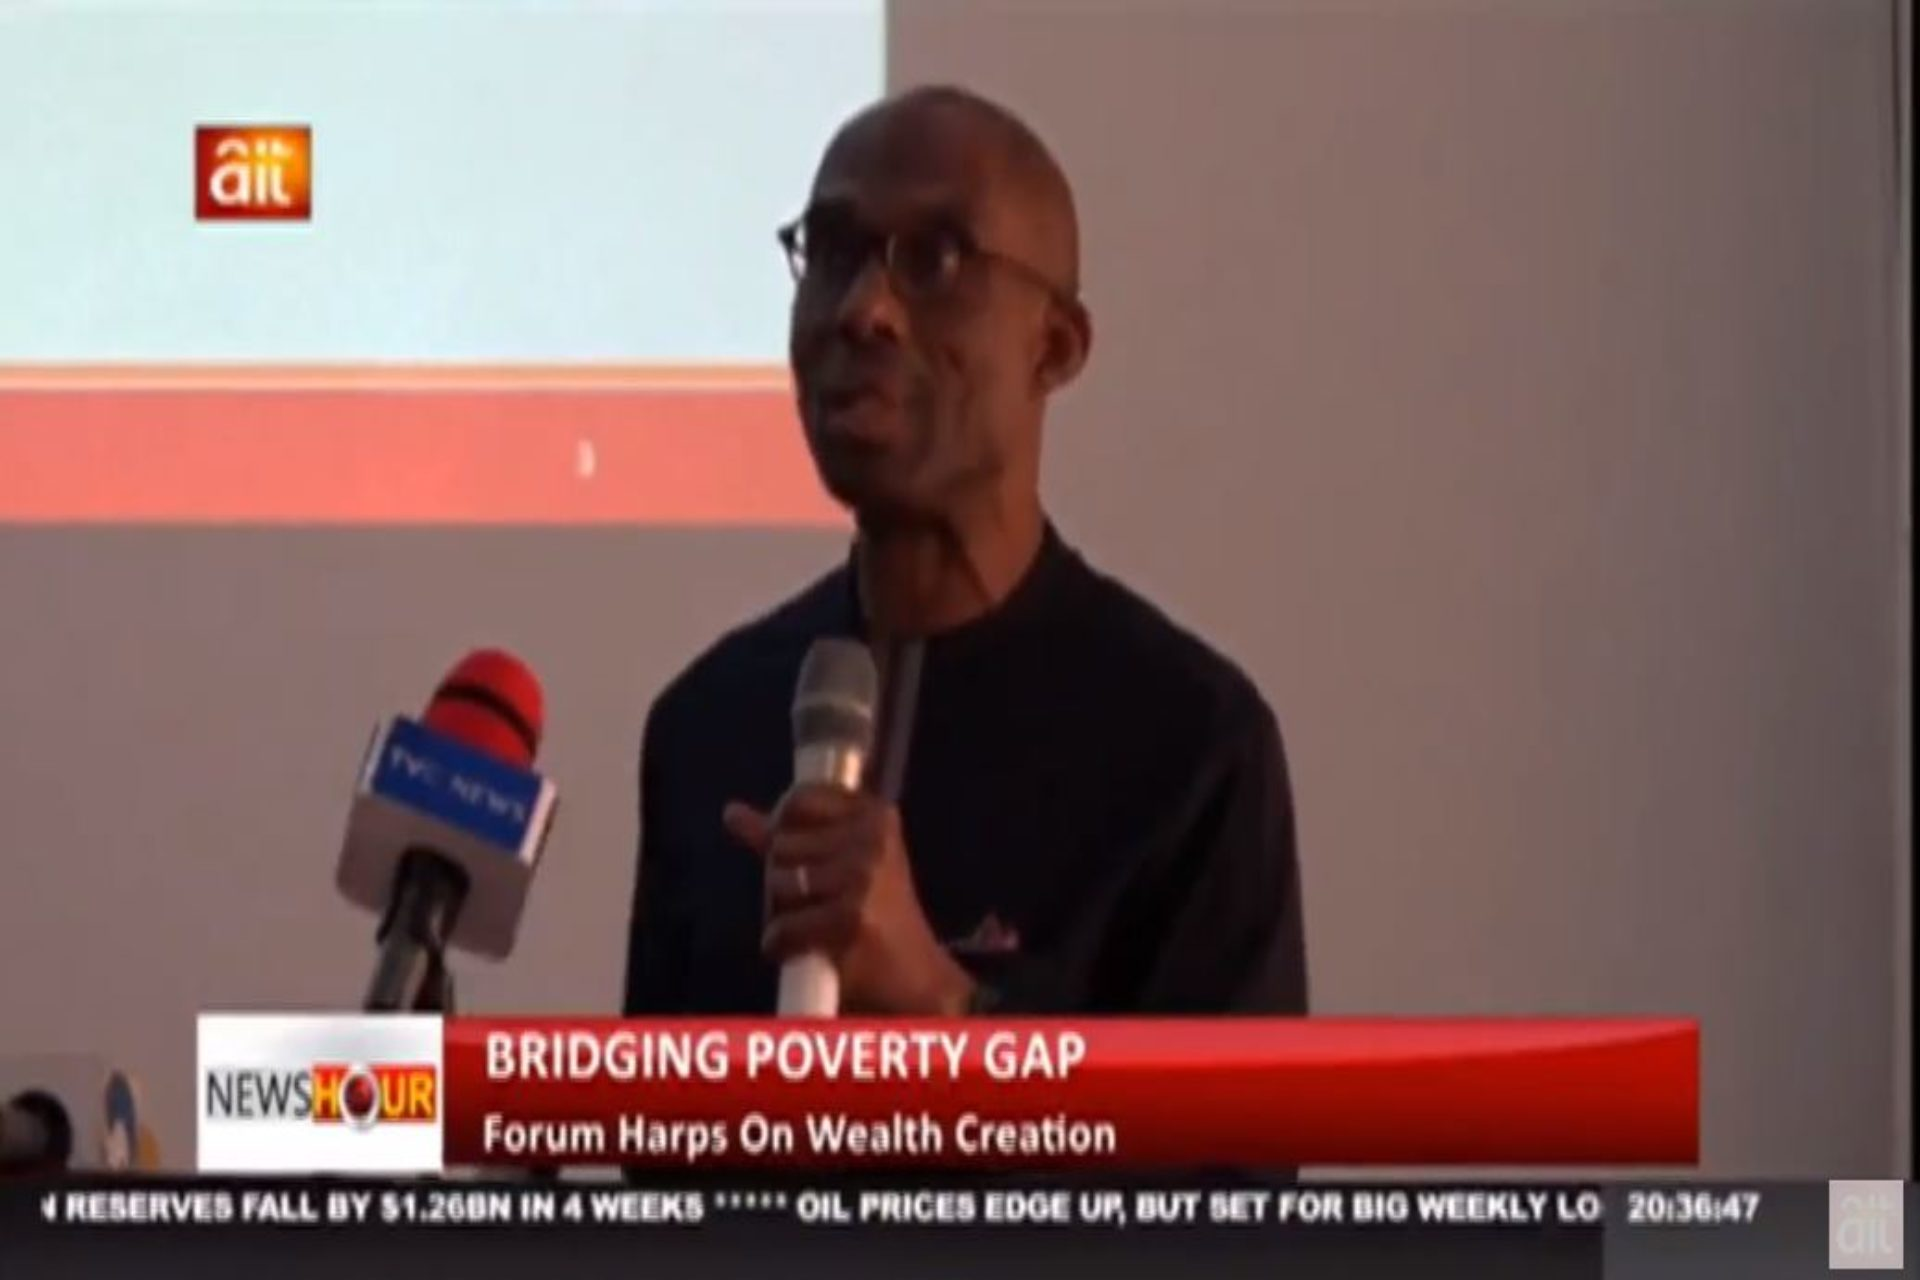 Bridging Inequality Gap: Forum harps on Education, health